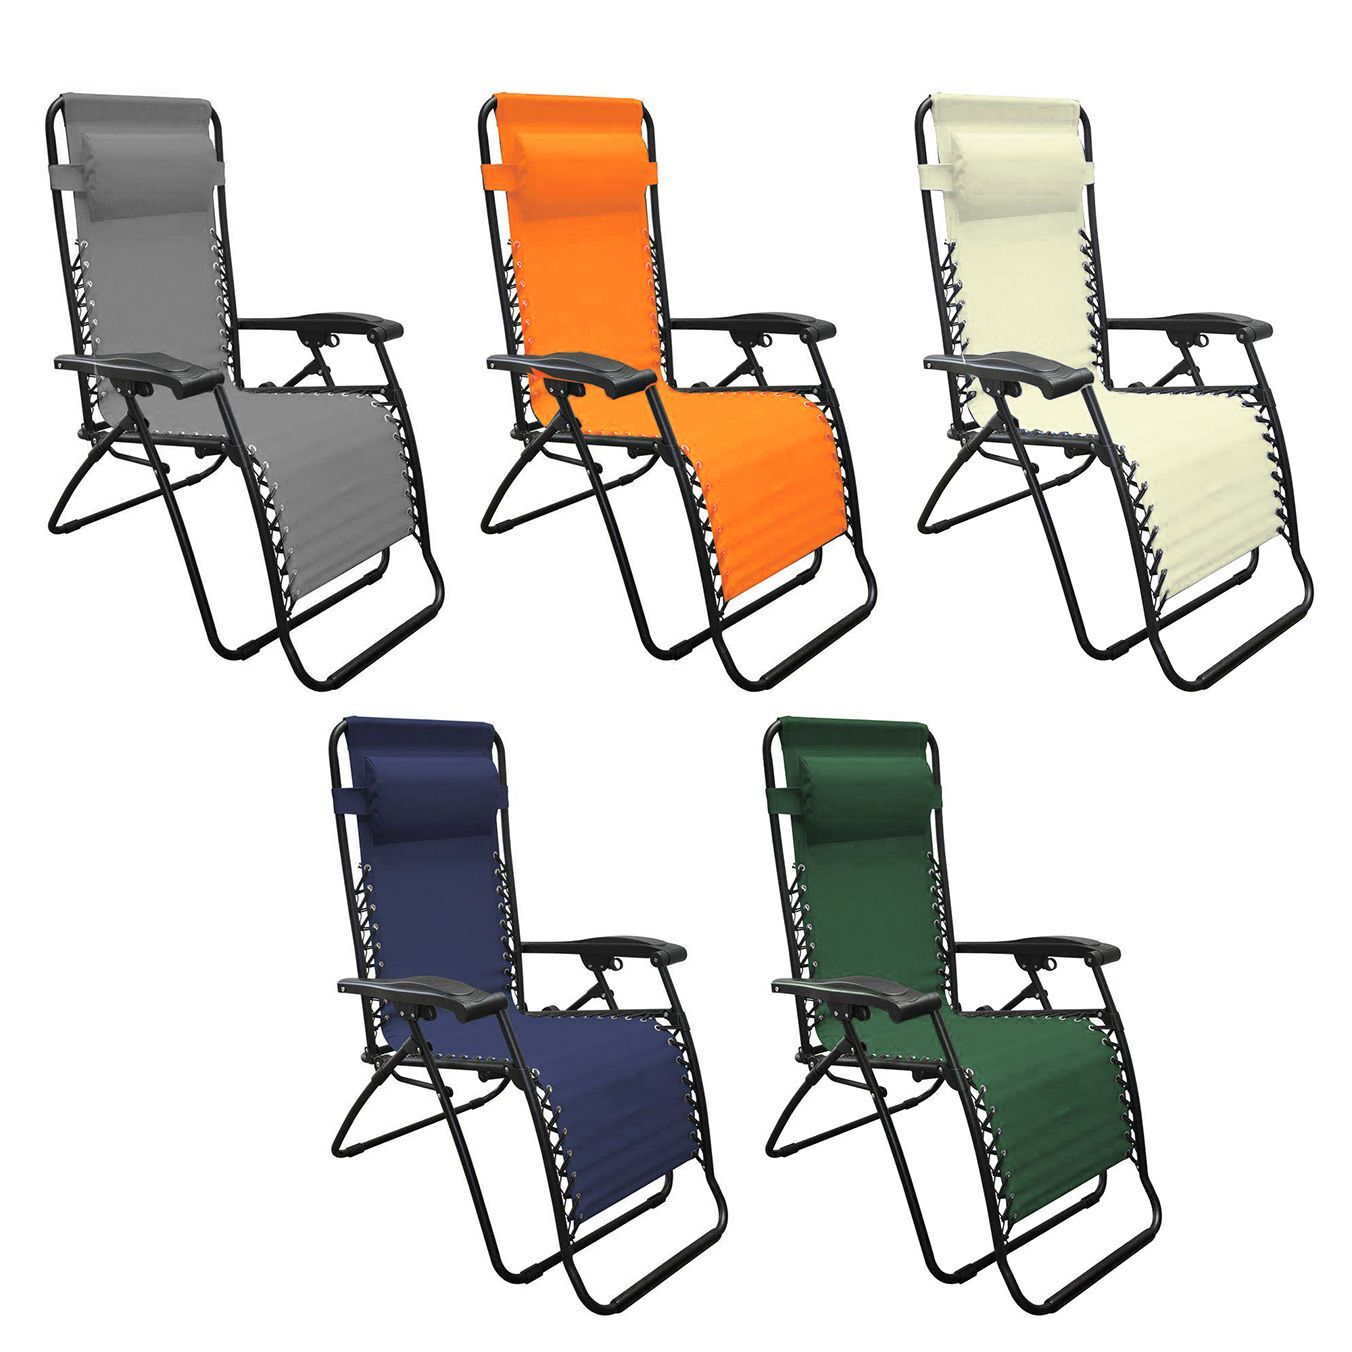 fold up reclining lawn chairs without arms lounge chair recliner patio pool beach outdoor